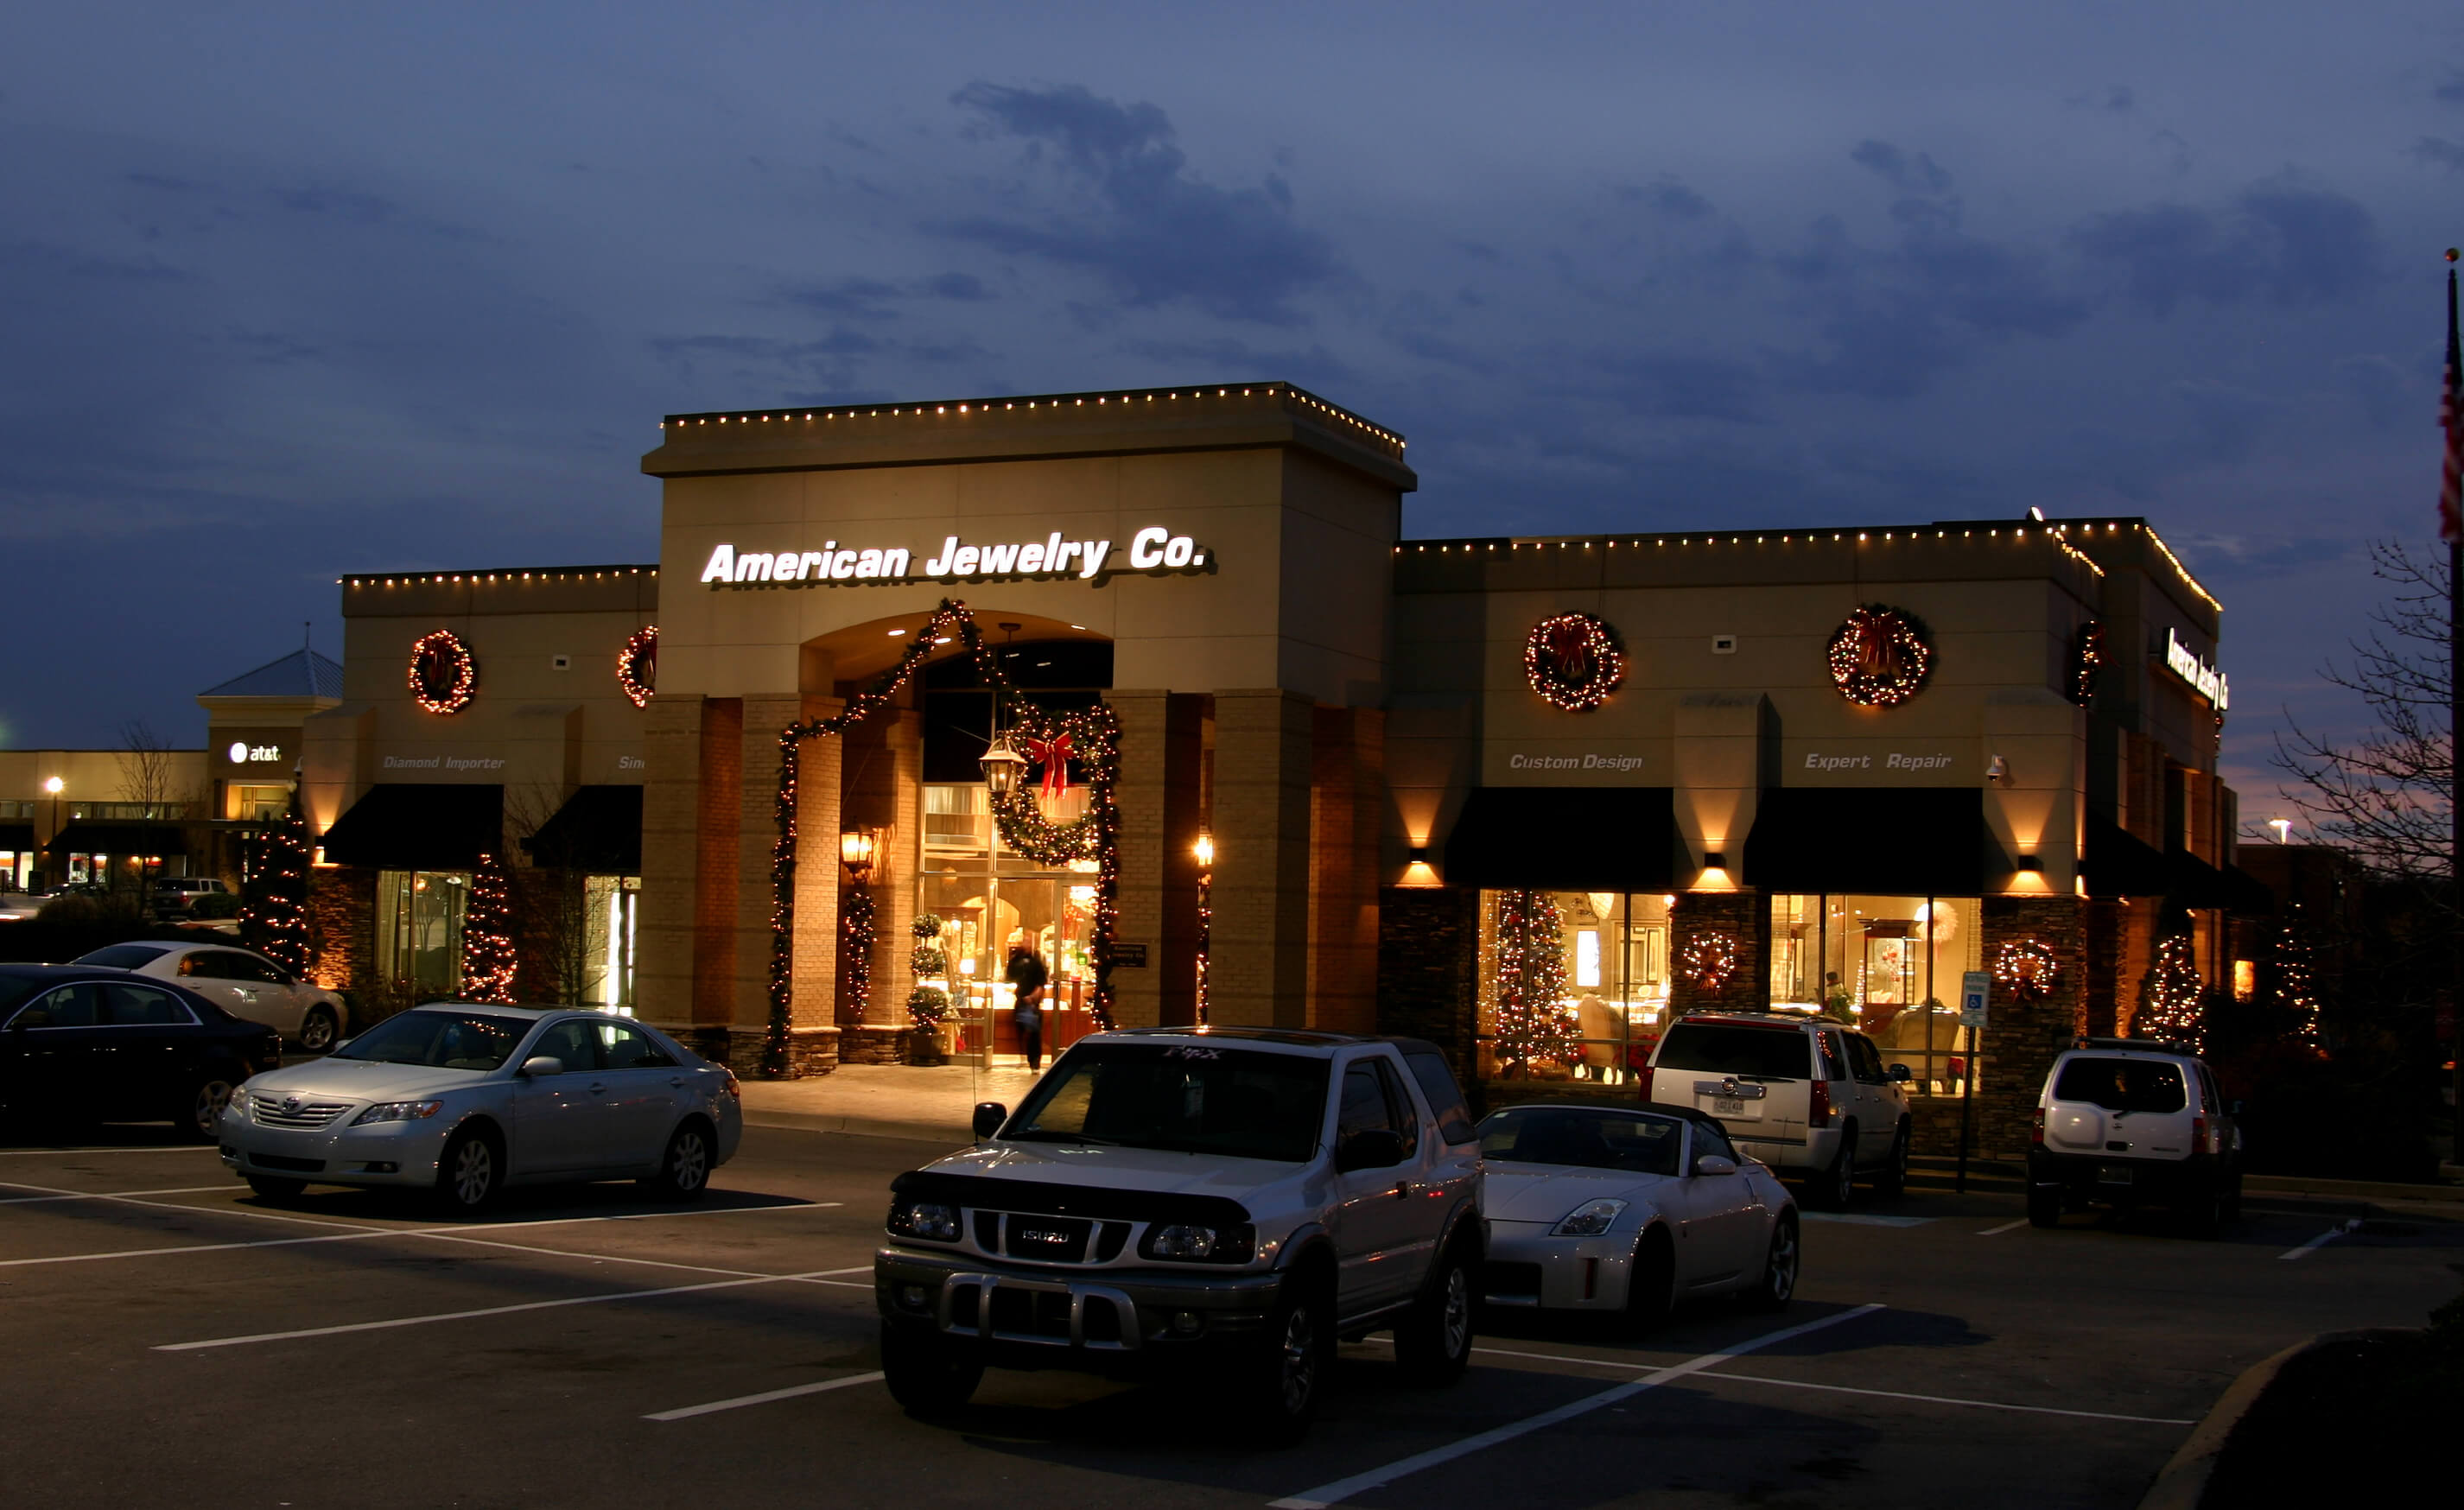 American Jewelry Co. Building with Christmas lights